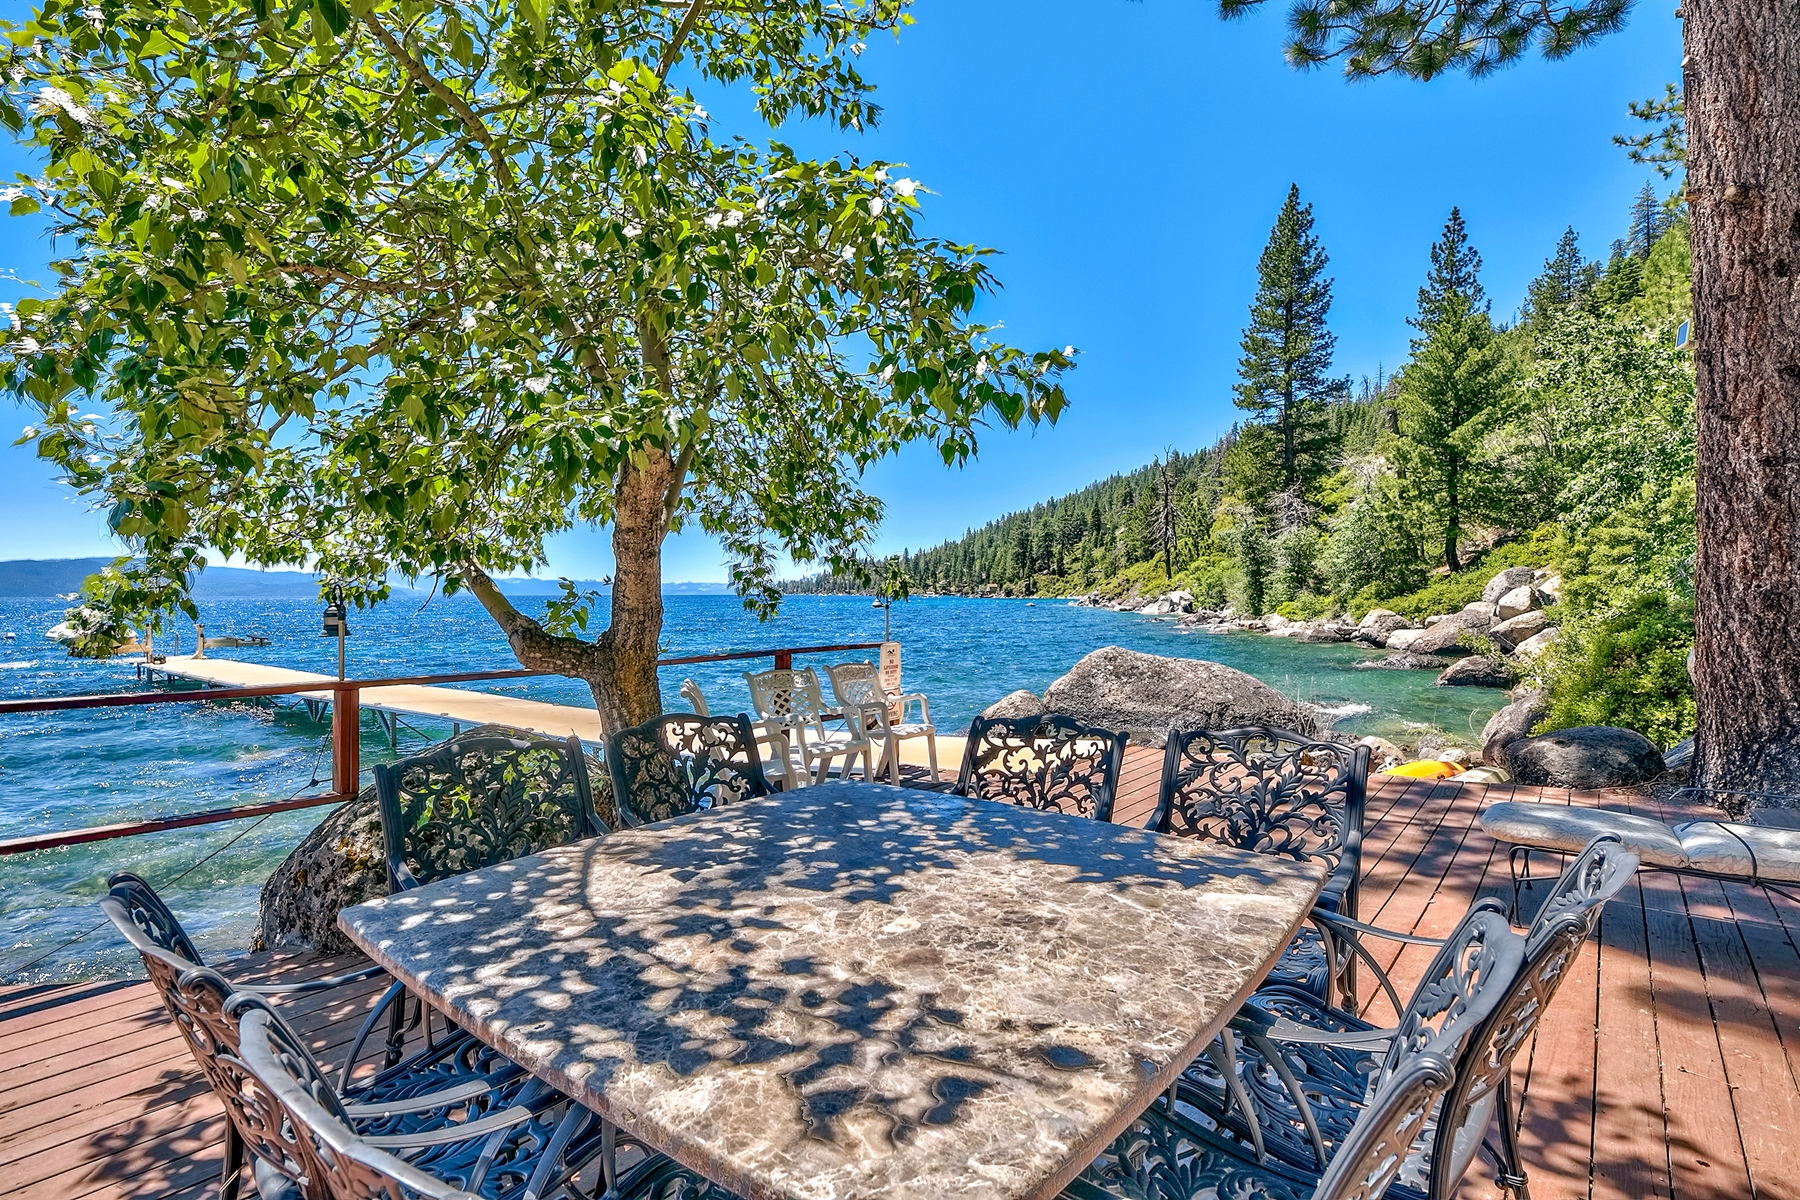 Additional photo for property listing at 453 Lakeshore Blvd., Incline Village, Nevada 453 Lakeshore Boulevard Incline Village, ???? 89451 ??